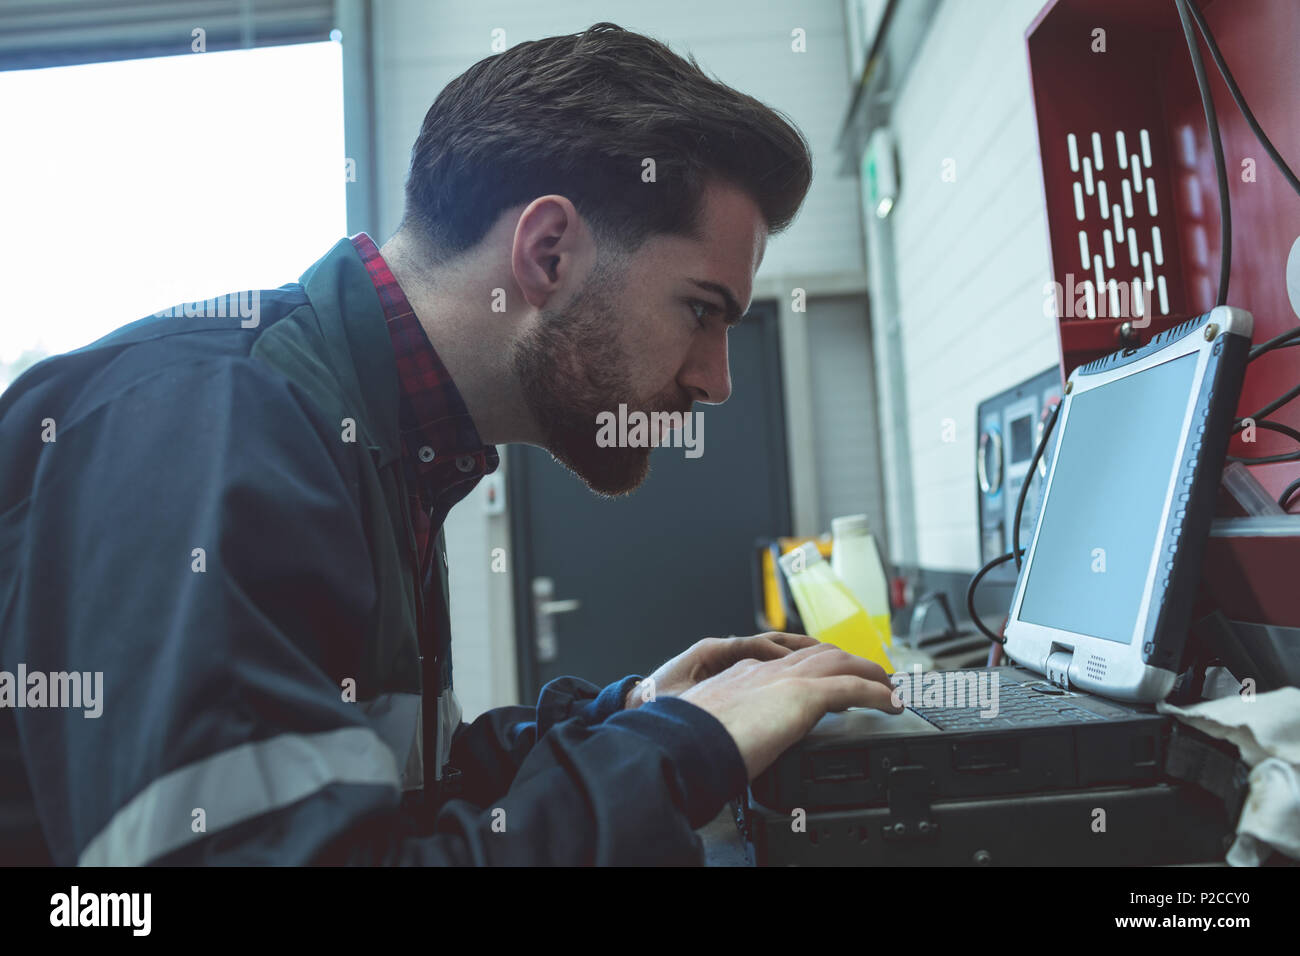 Attentive mechanic using laptop - Stock Image